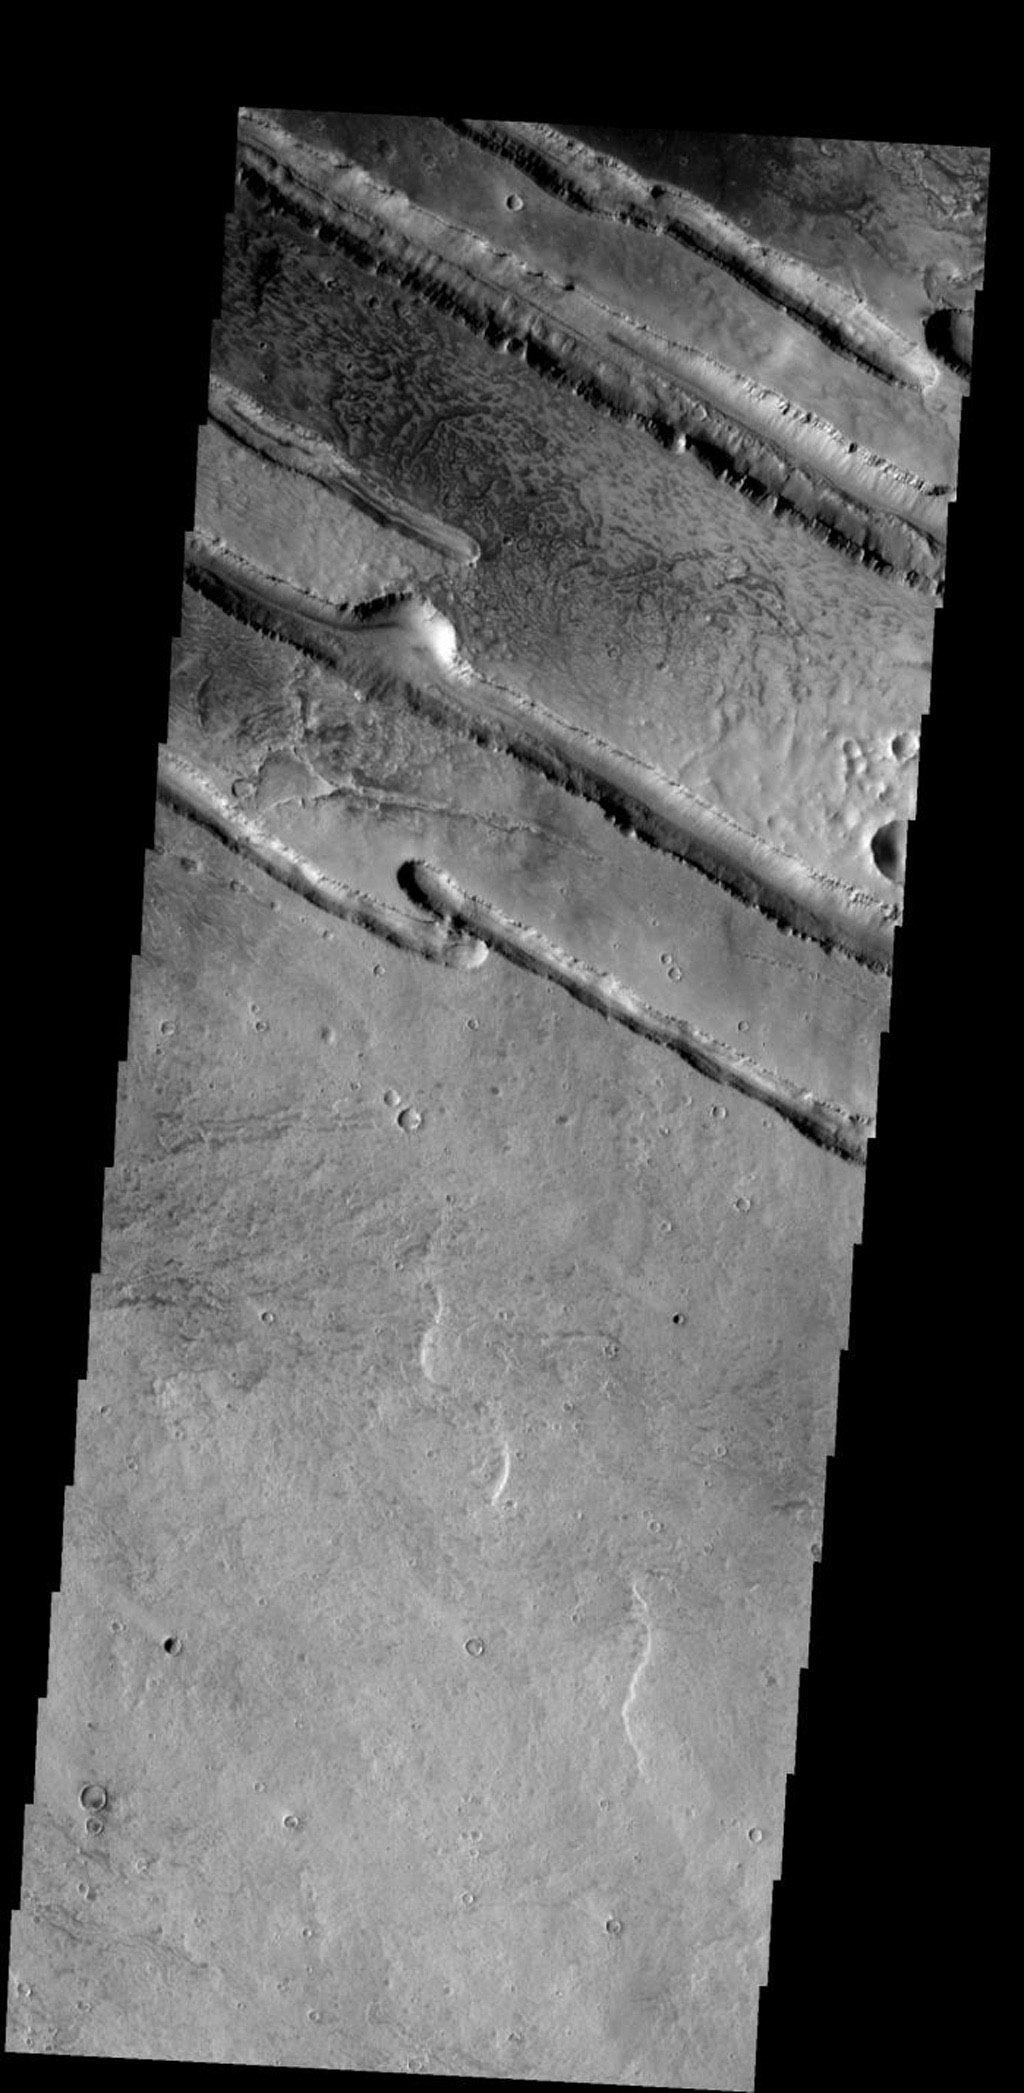 These linear fractures are part of Panchaia Rupes on Mars as seen by NASA's Mars Odyssey spacecraft.